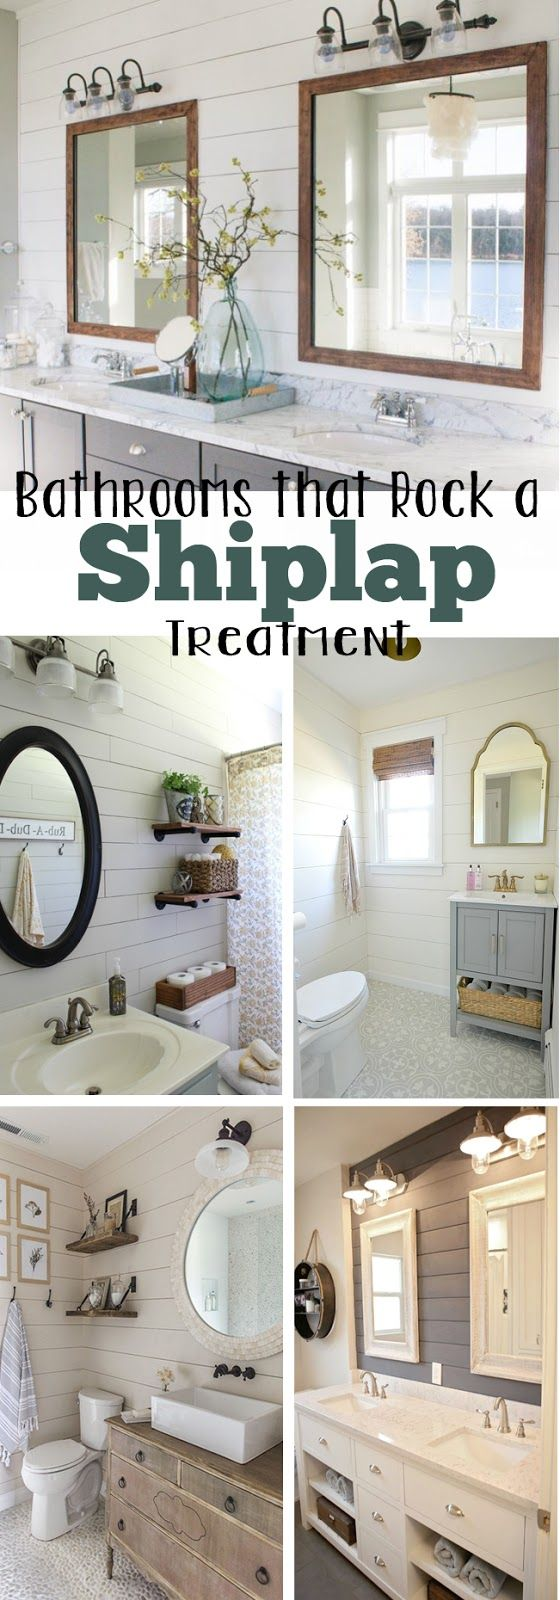 bathrooms floor tiles 25 best ideas about shiplap fireplace on 11986